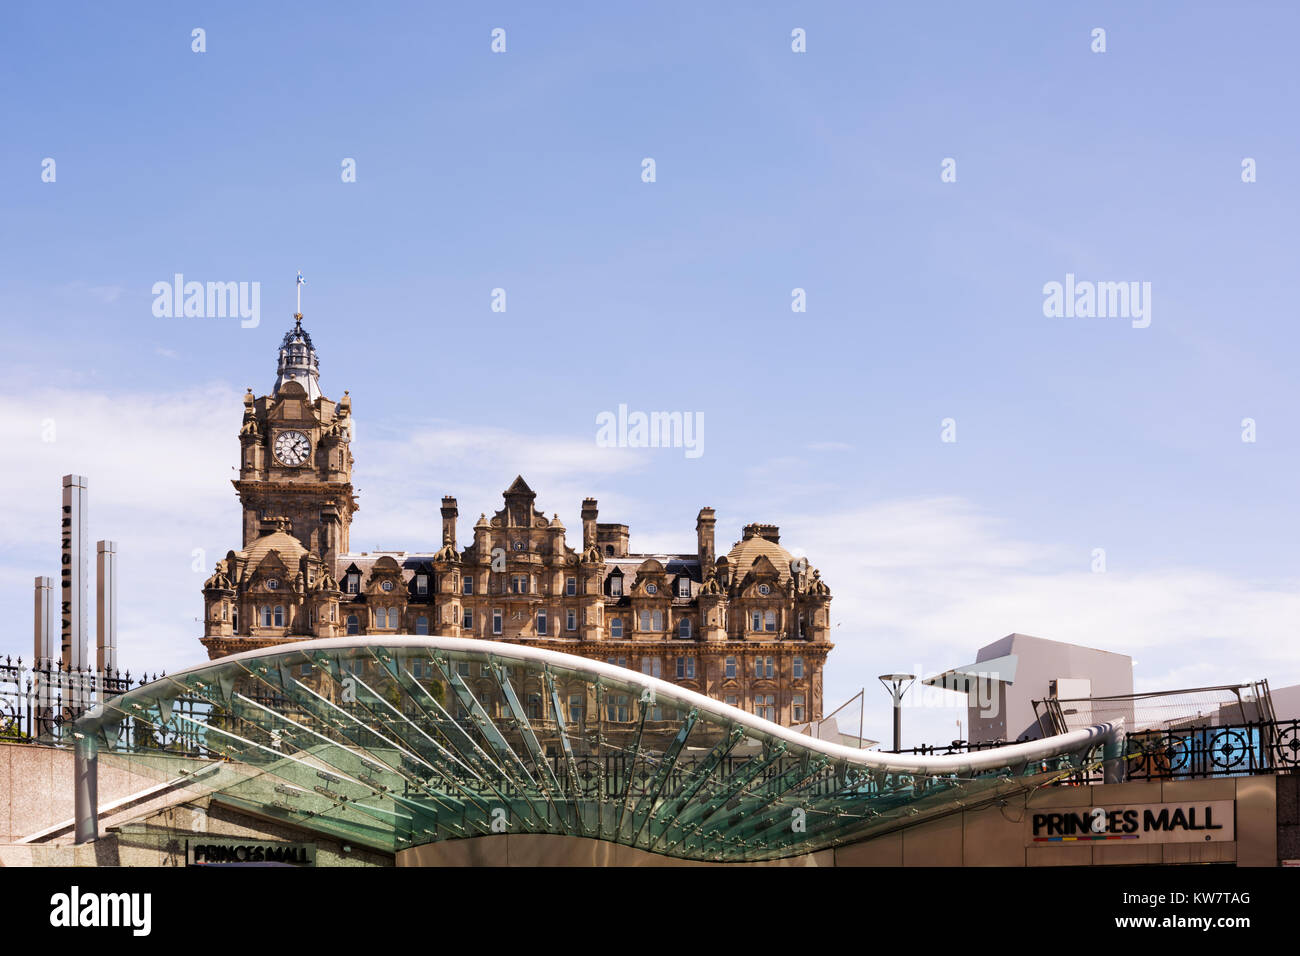 Entrance to Waverley Mall with the Balmoral Hotel in the background, Edinburgh, Scotland, UK. Concept - modern and - Stock Image